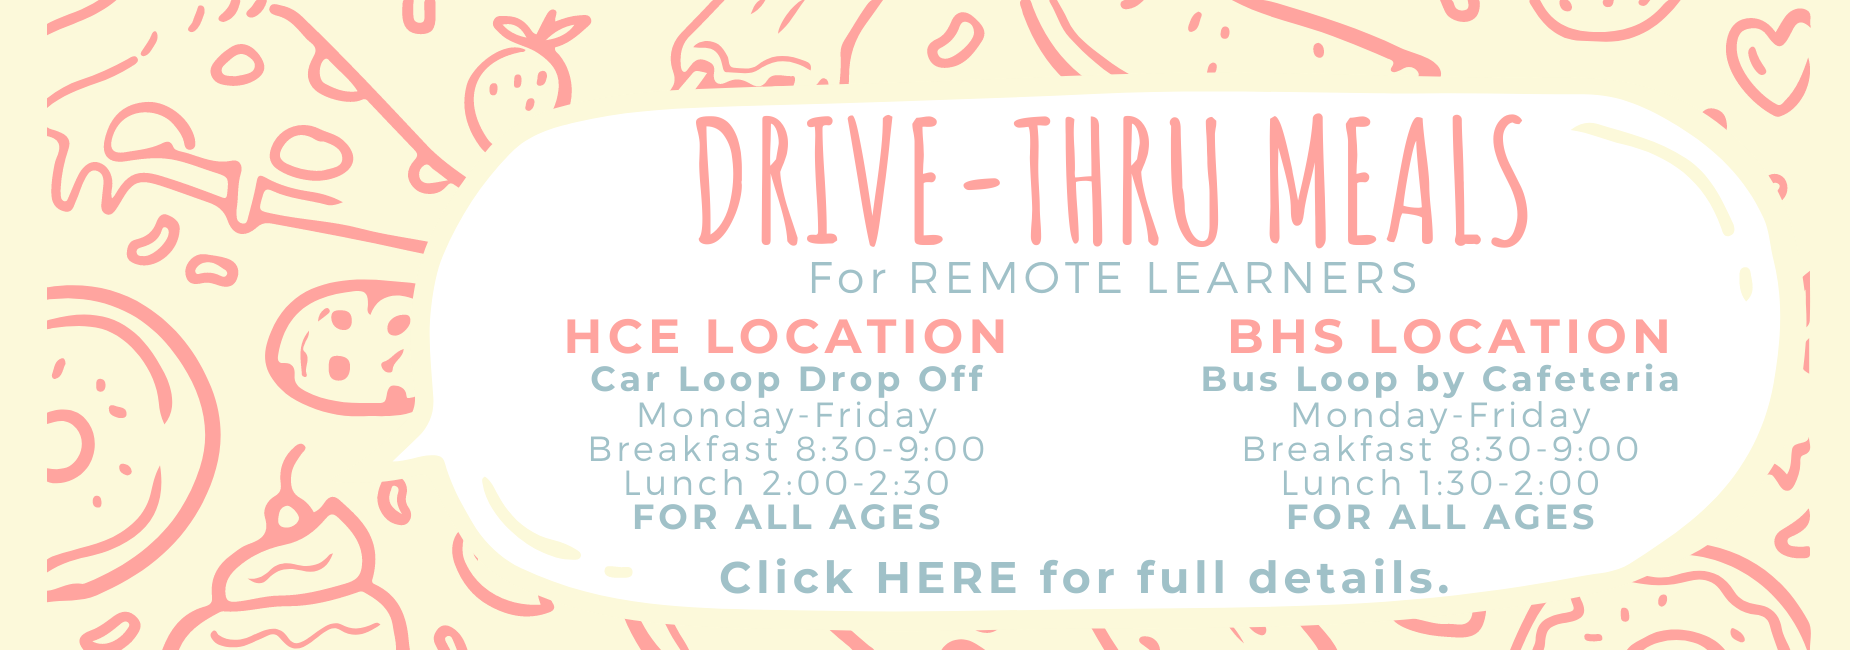 Drive thru meals for remote learners